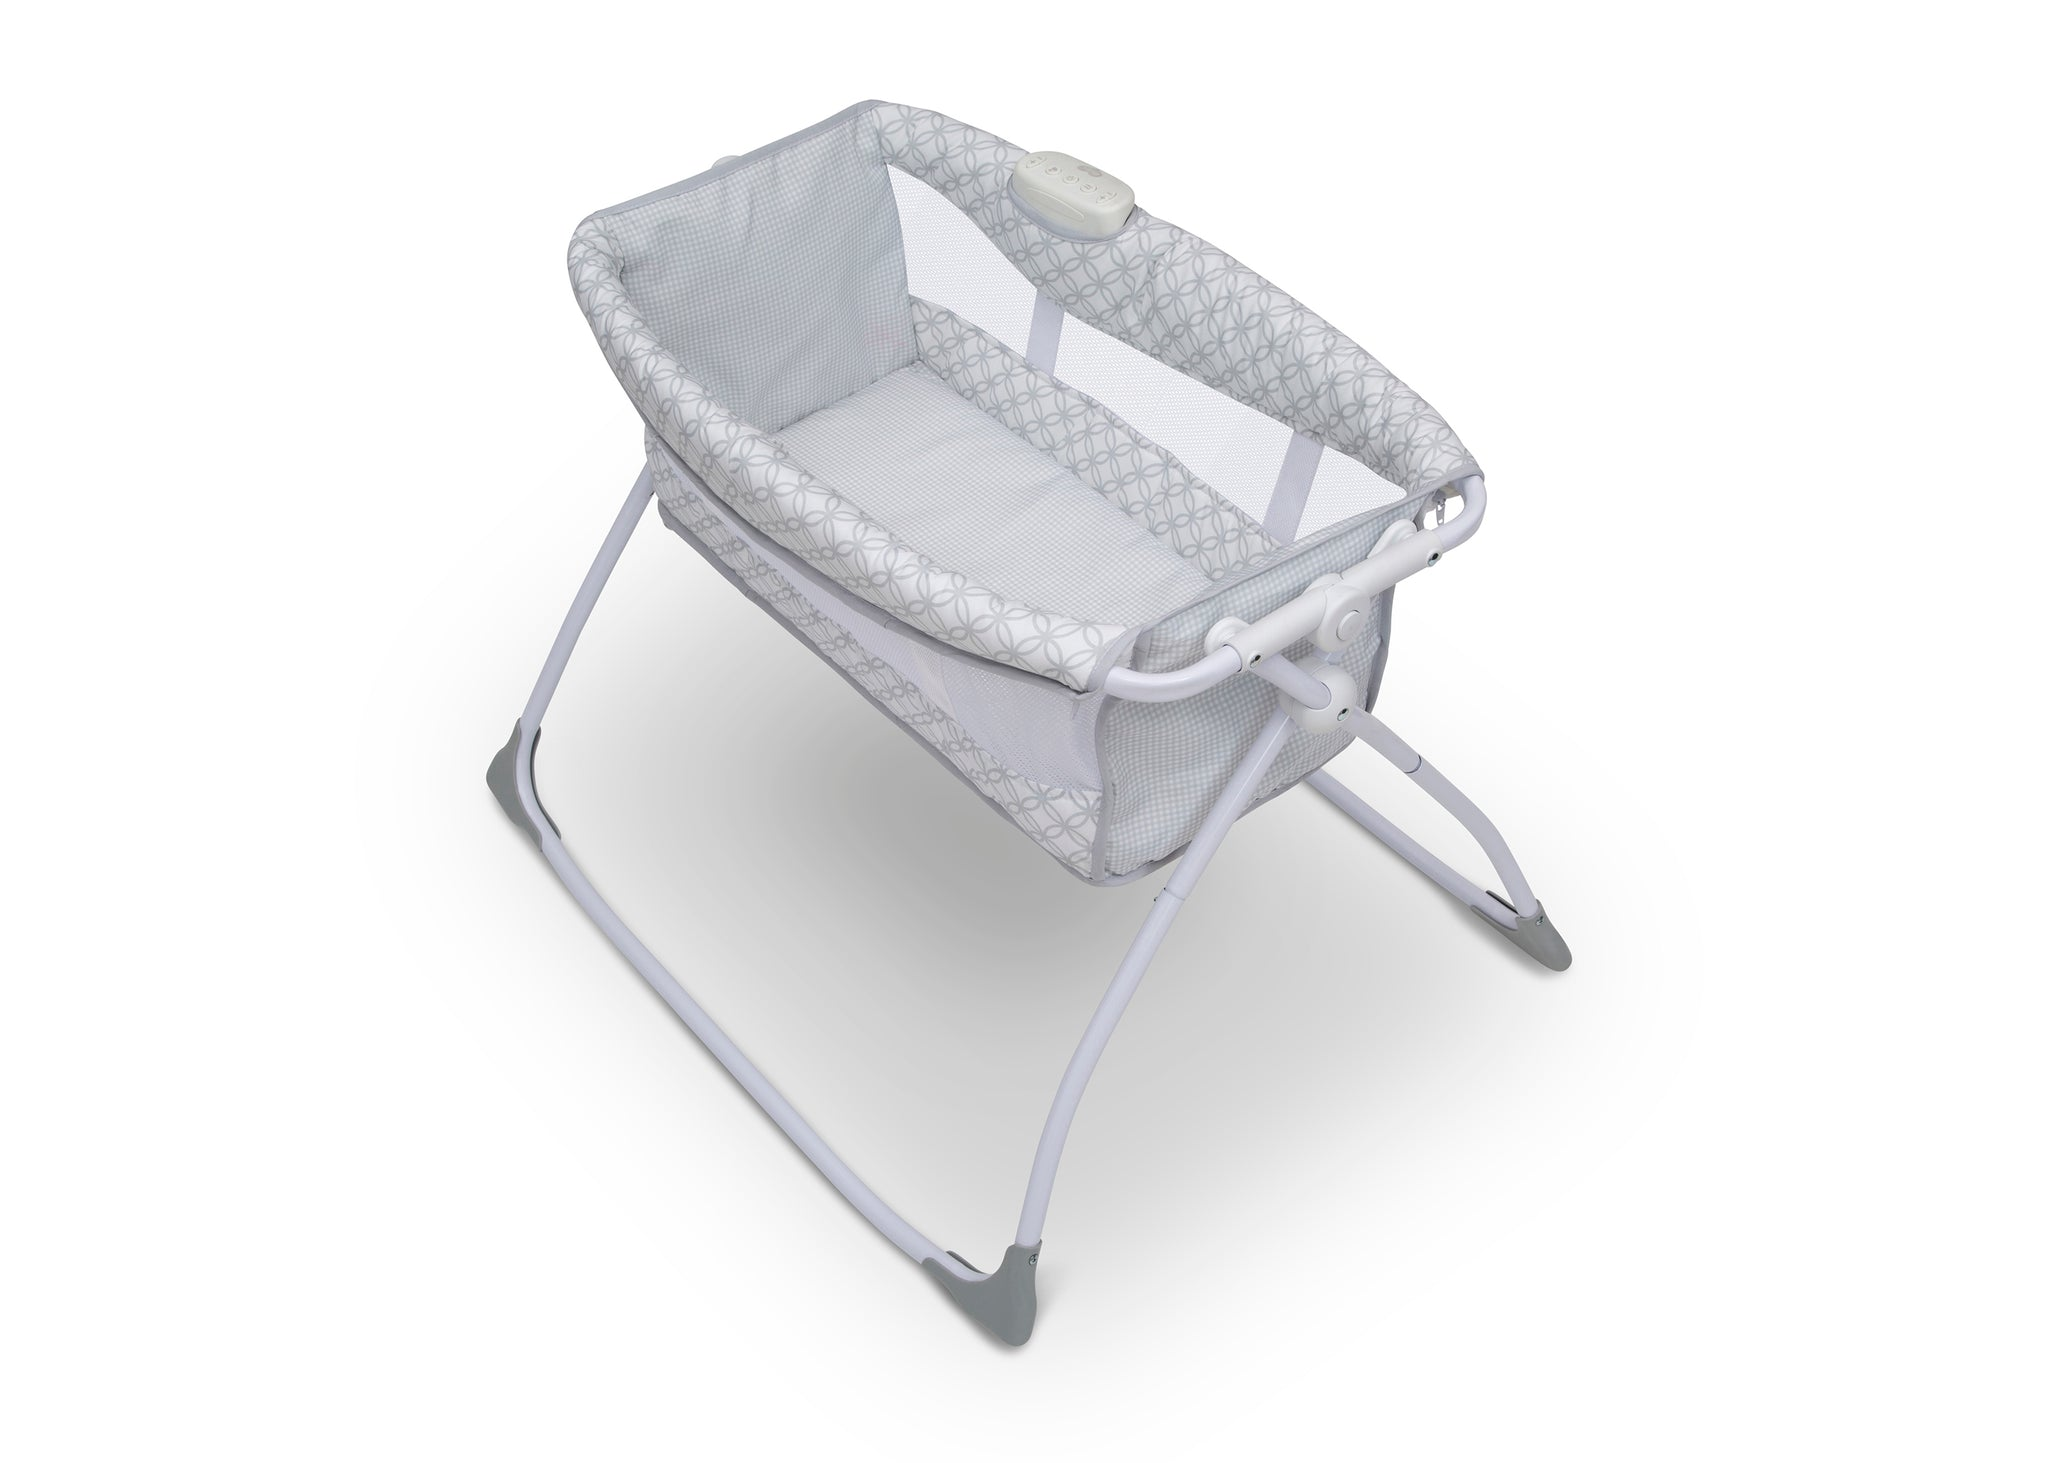 Delta Children Grey Infinity (434) Newborn Soothing Sleeper Bassinet, Top Silo View